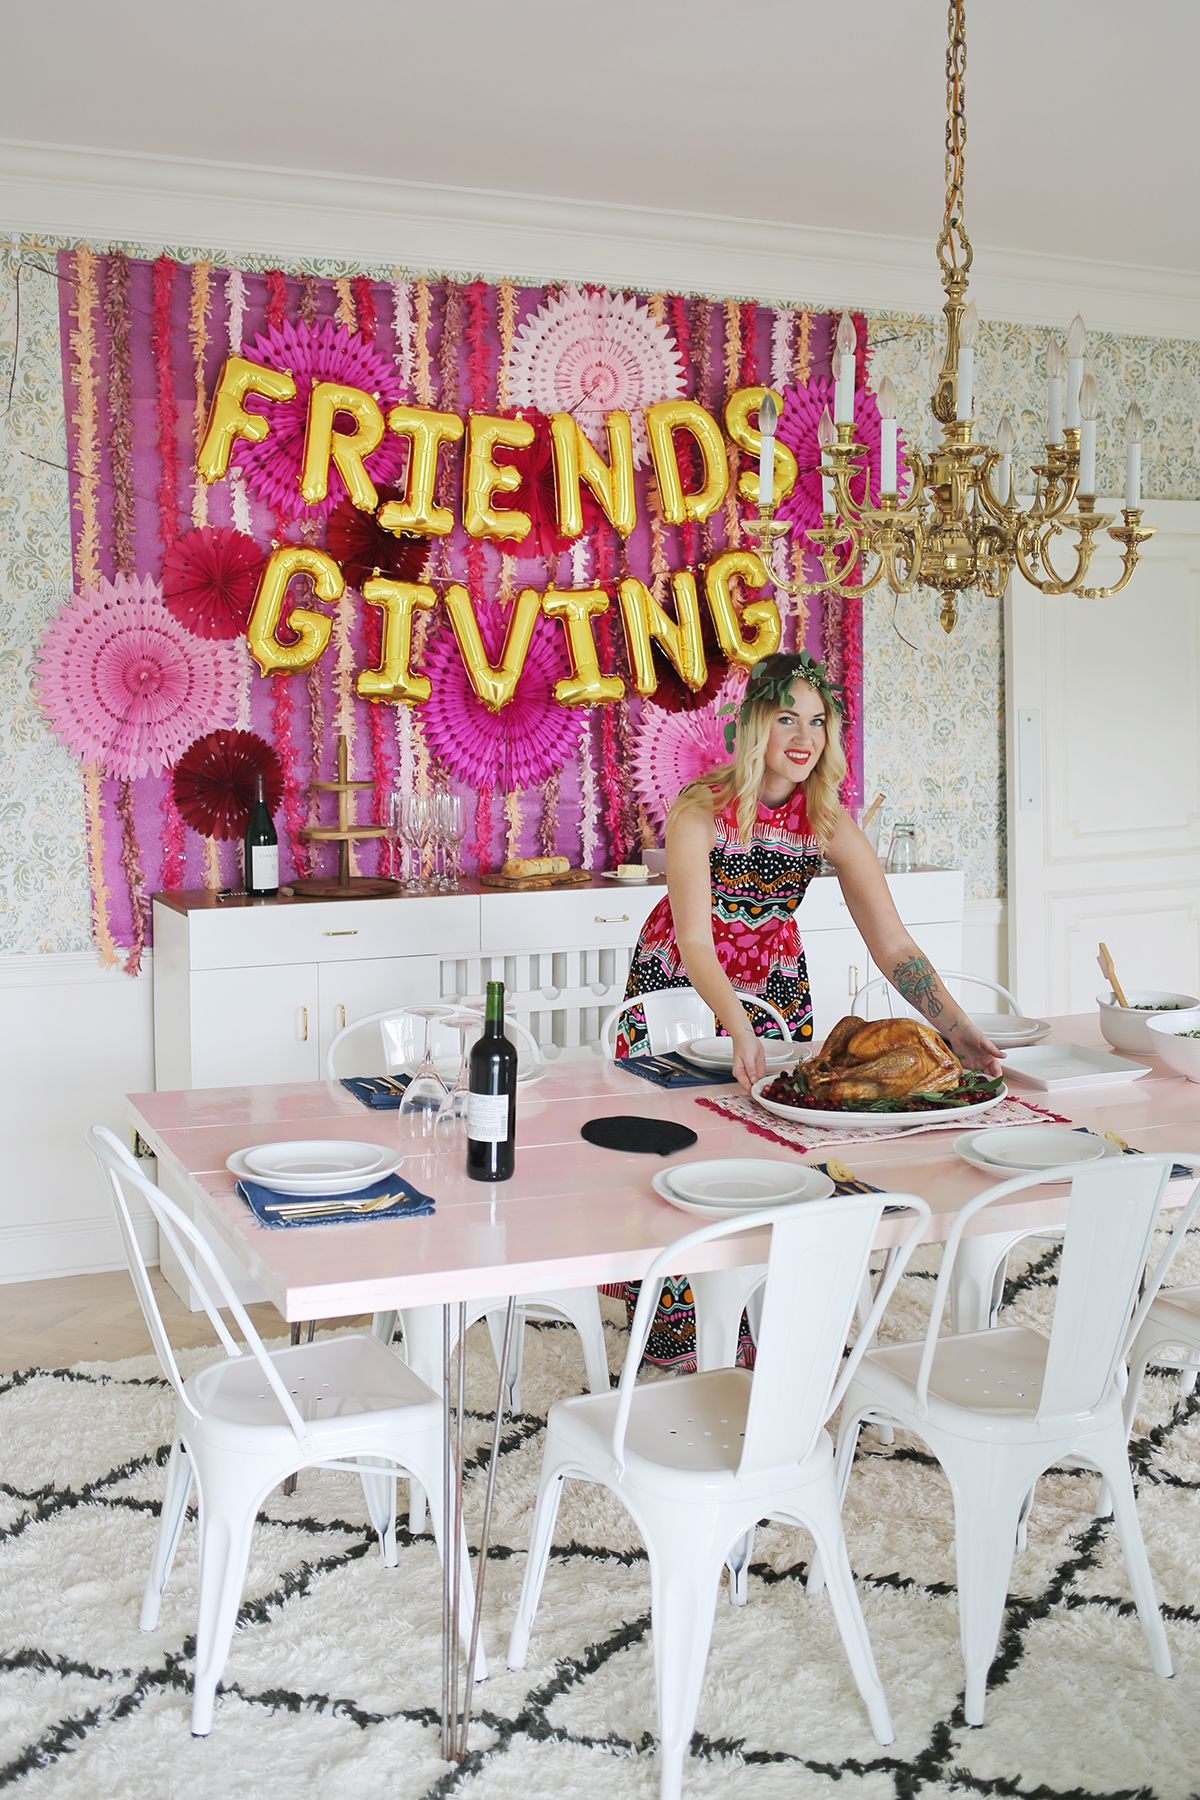 10 Diys For A Friendsgiving Celebration